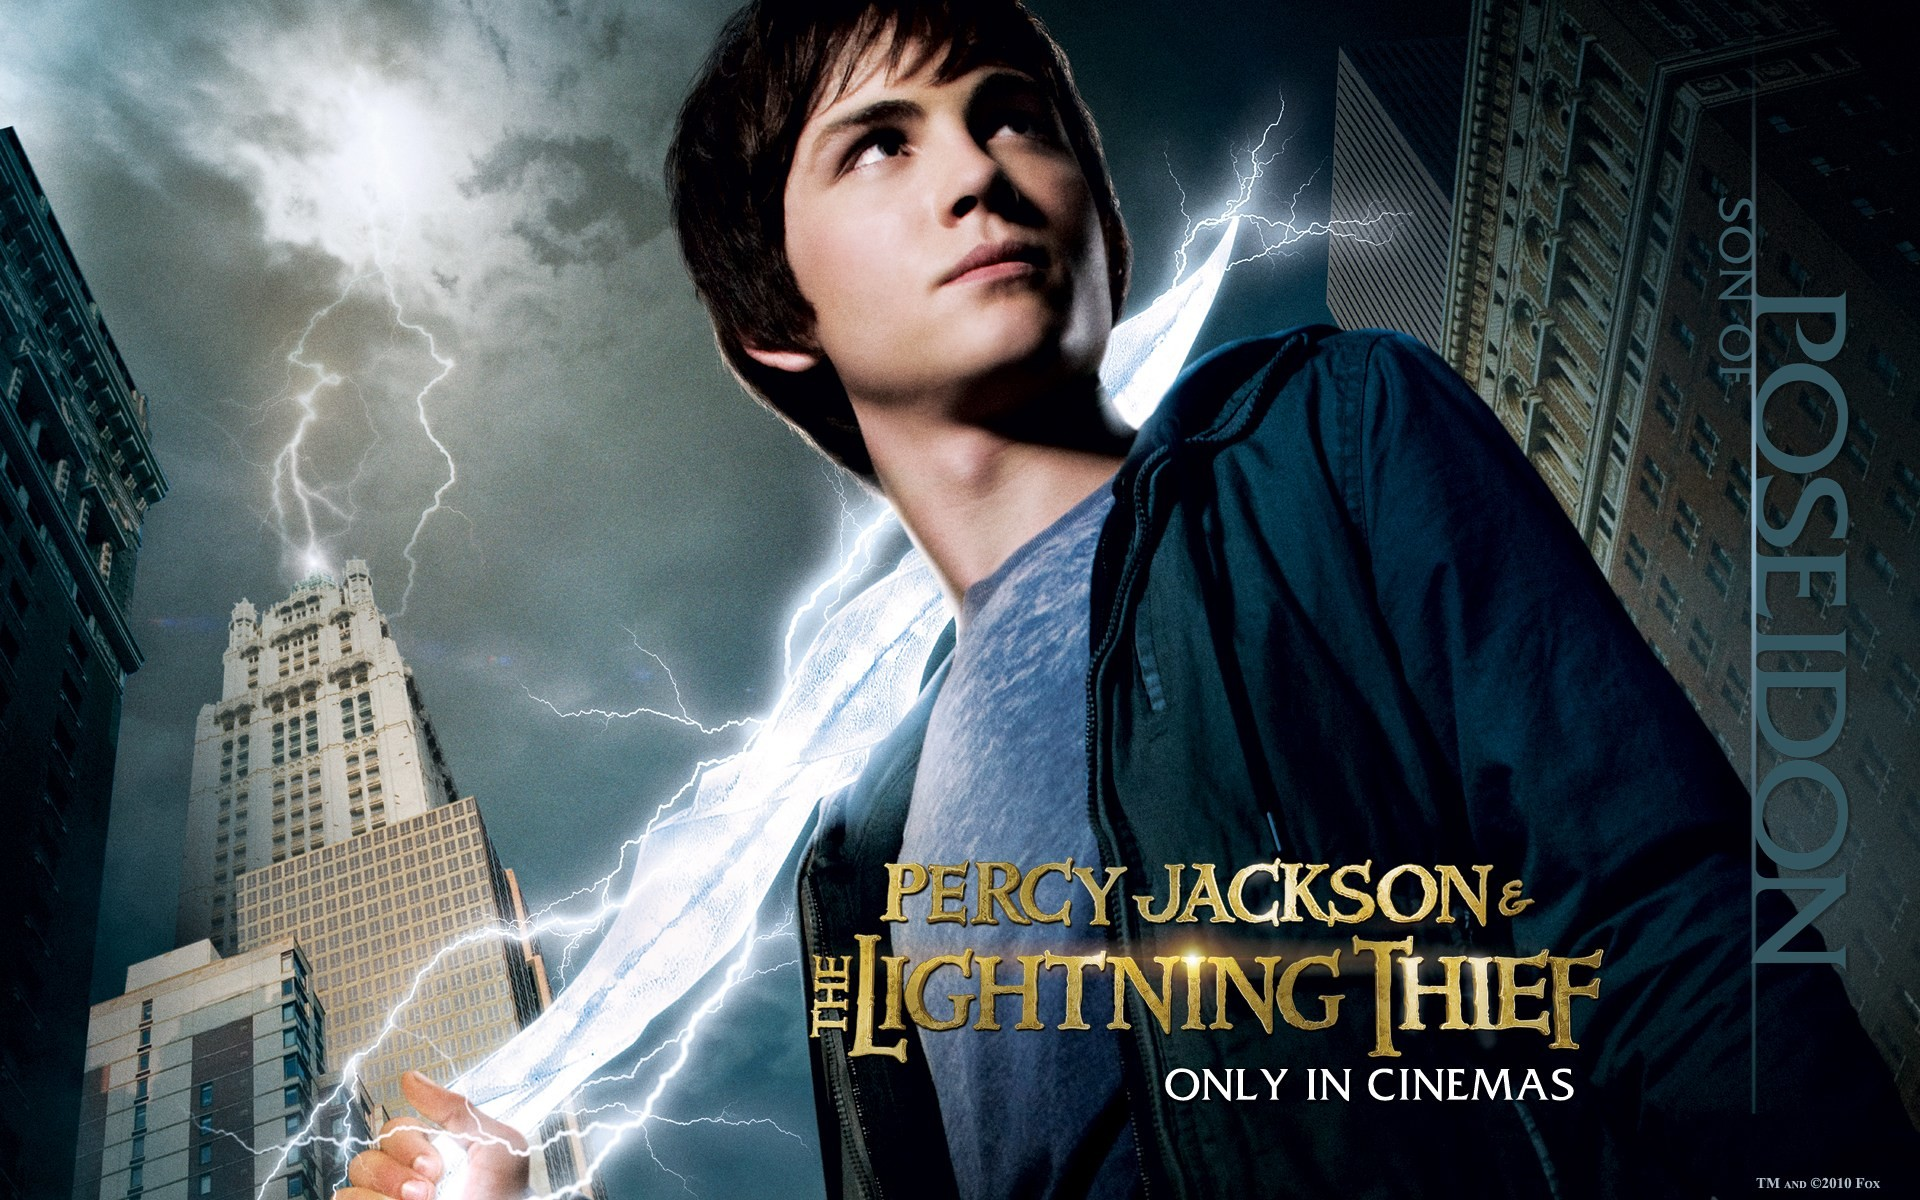 Amazing Percy Jackson Wallpaper of awesome full screen HD wallpapers to download